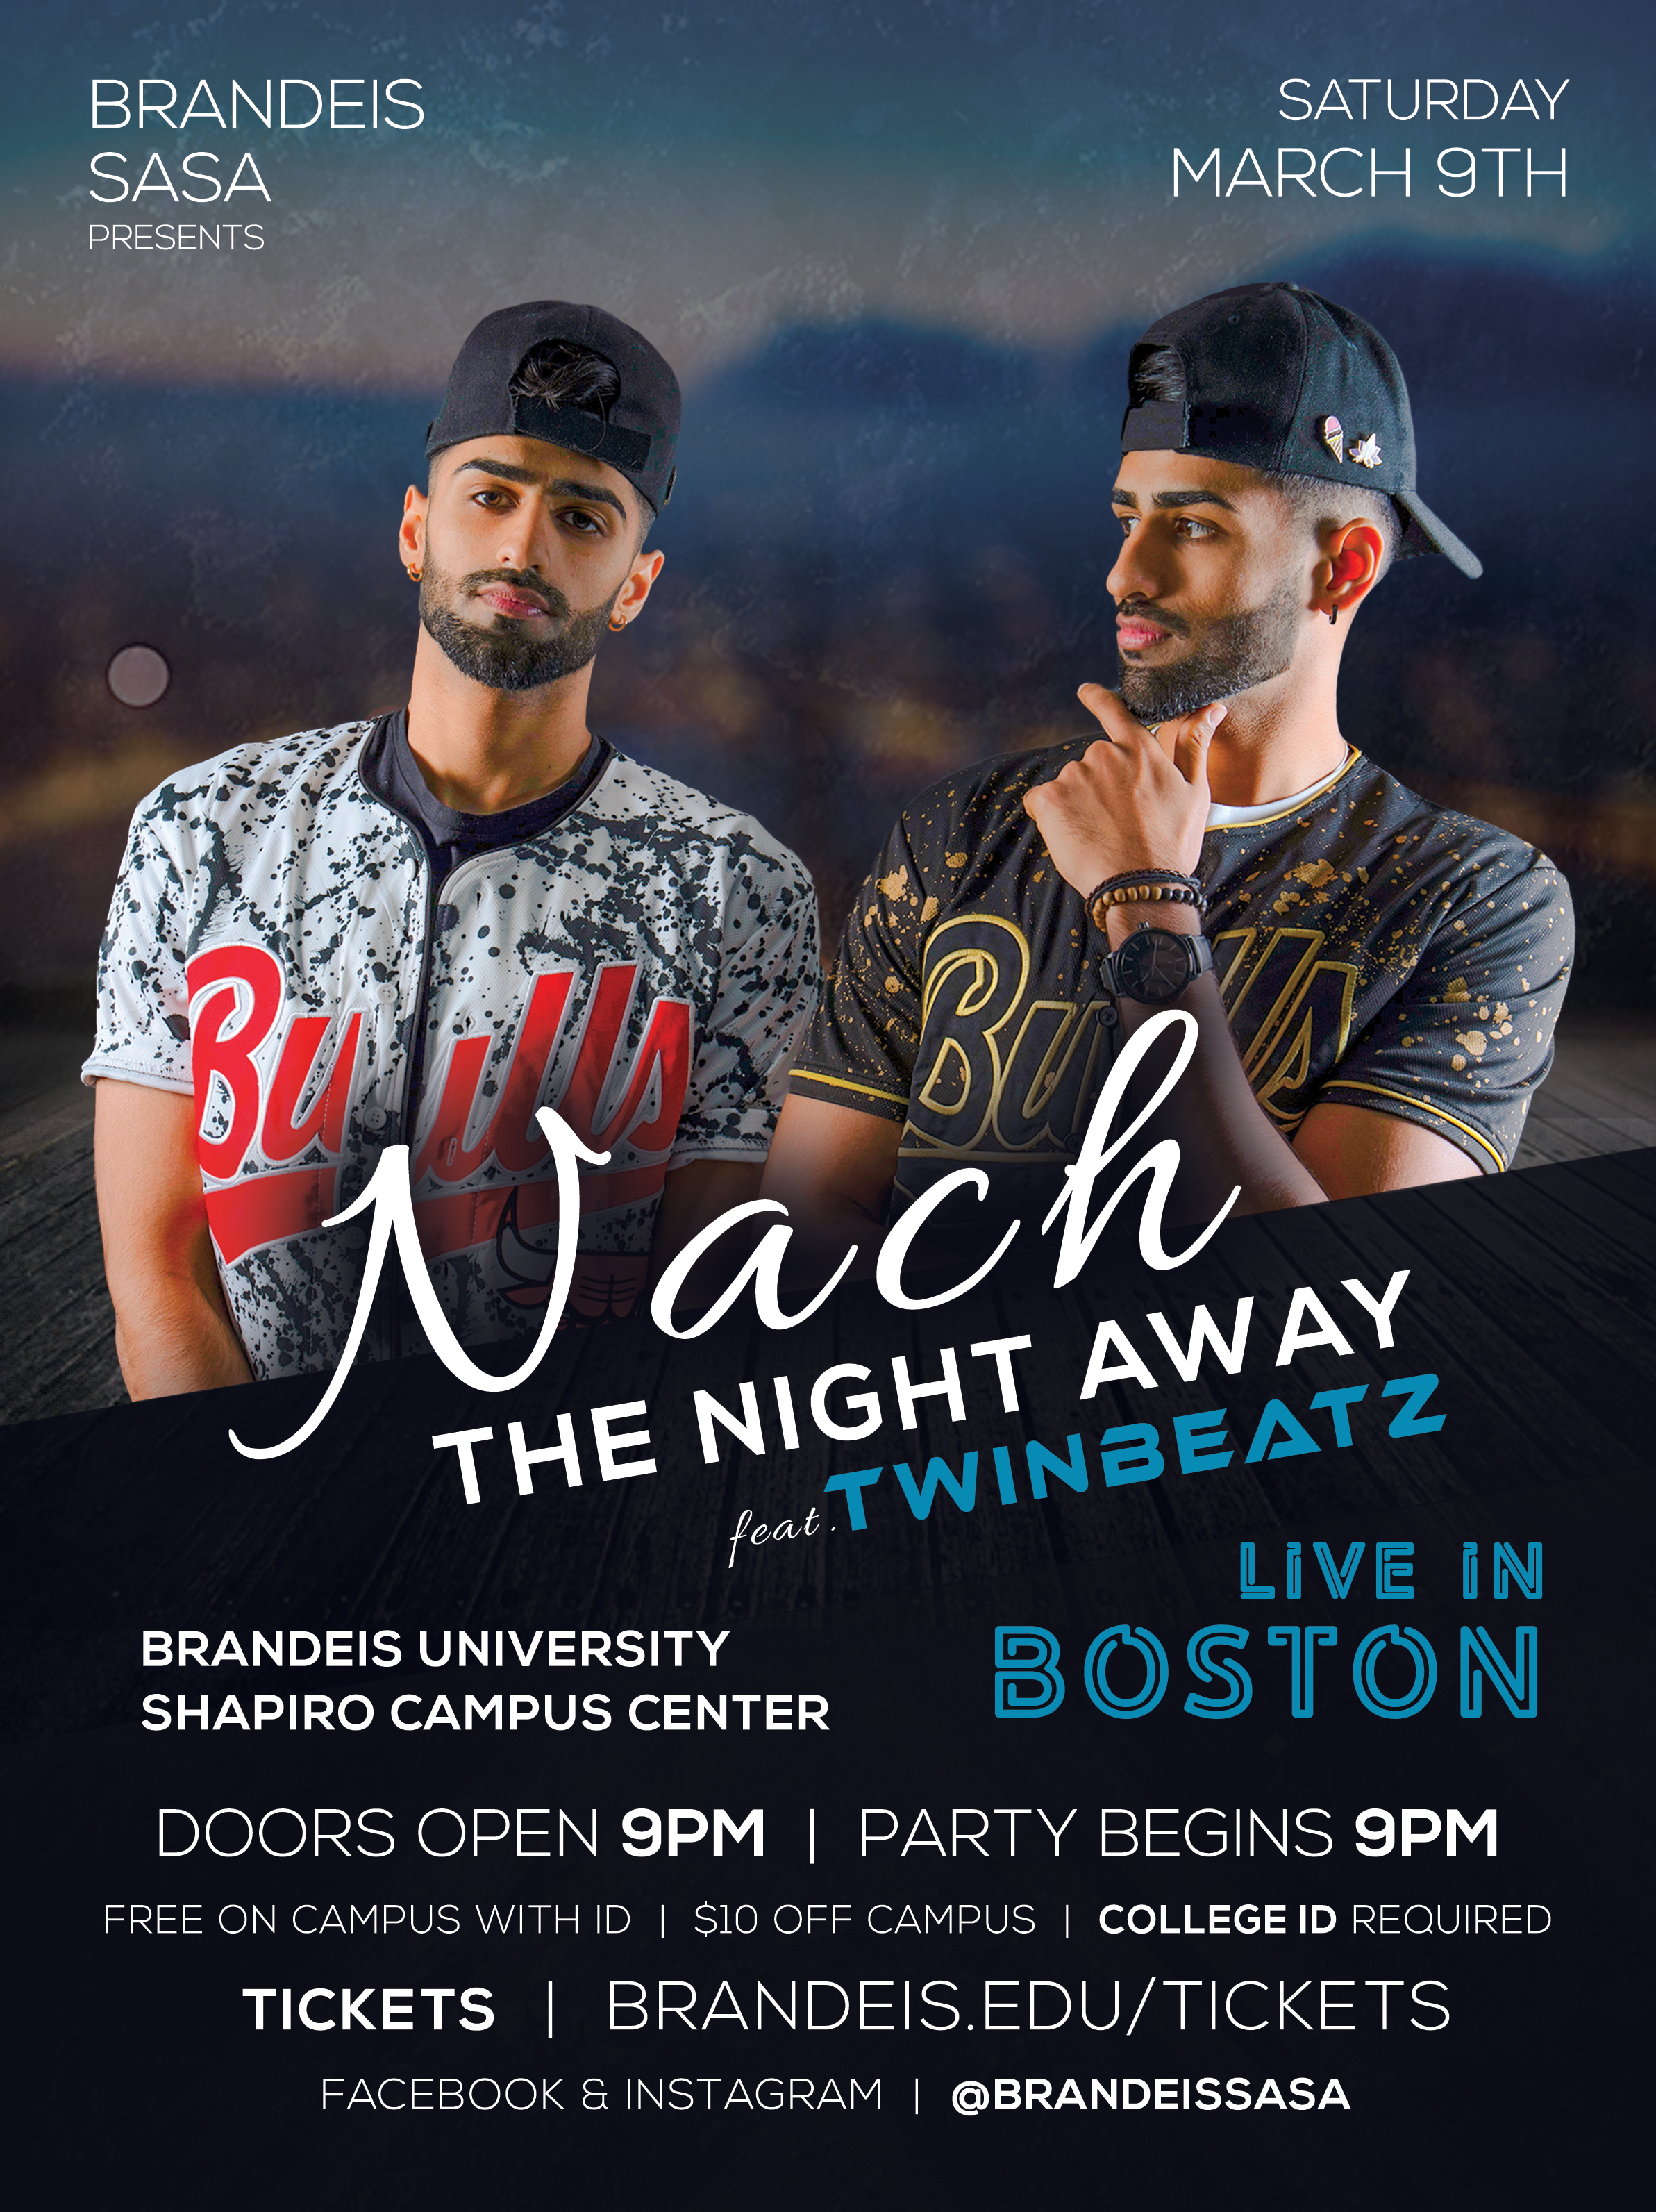 Twinbeatz Live at Brandeis University